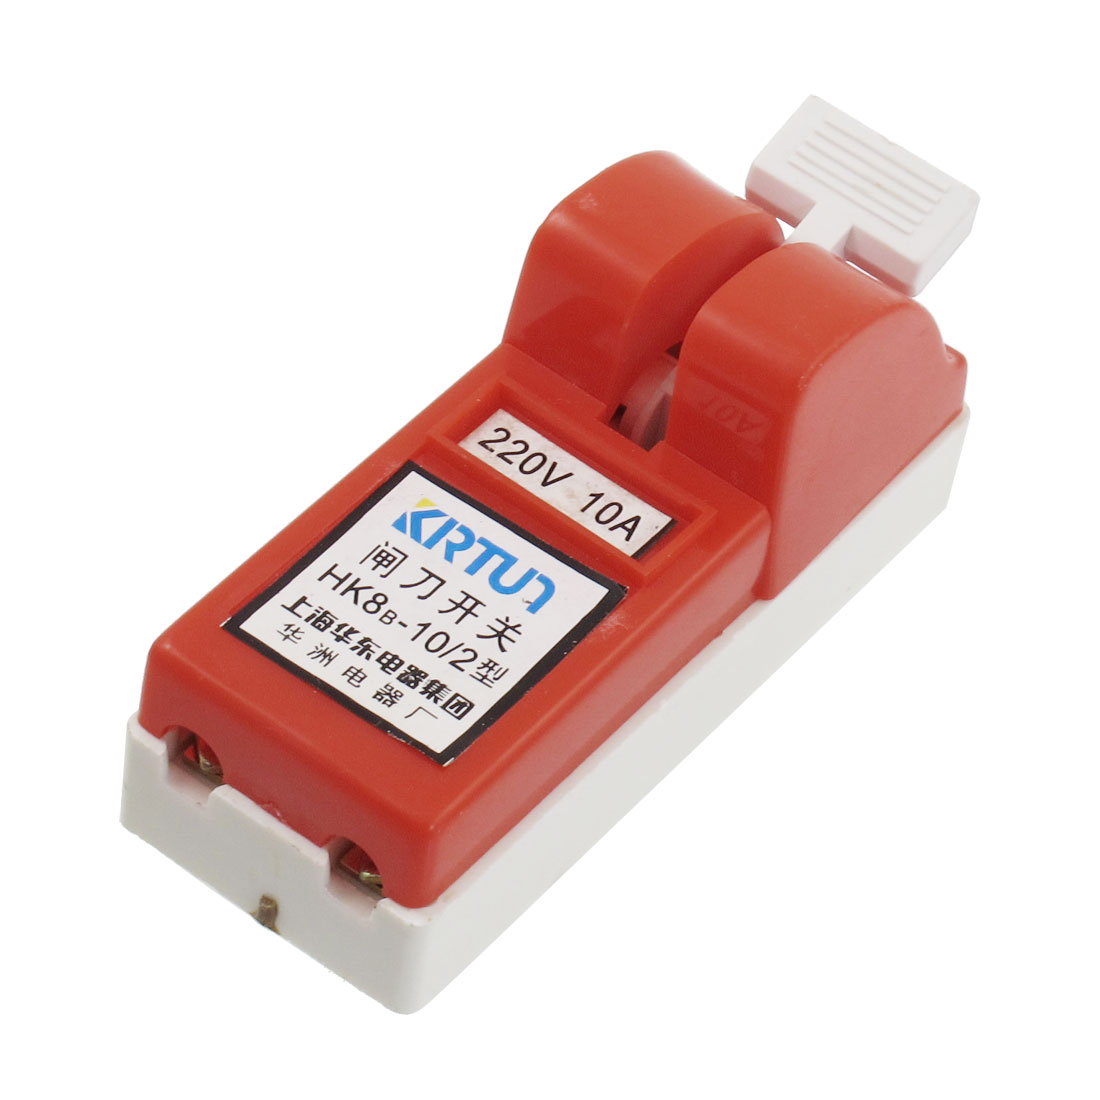 AC 220V 10A 2 Pole Circuit Control Closing Disconnect Switch